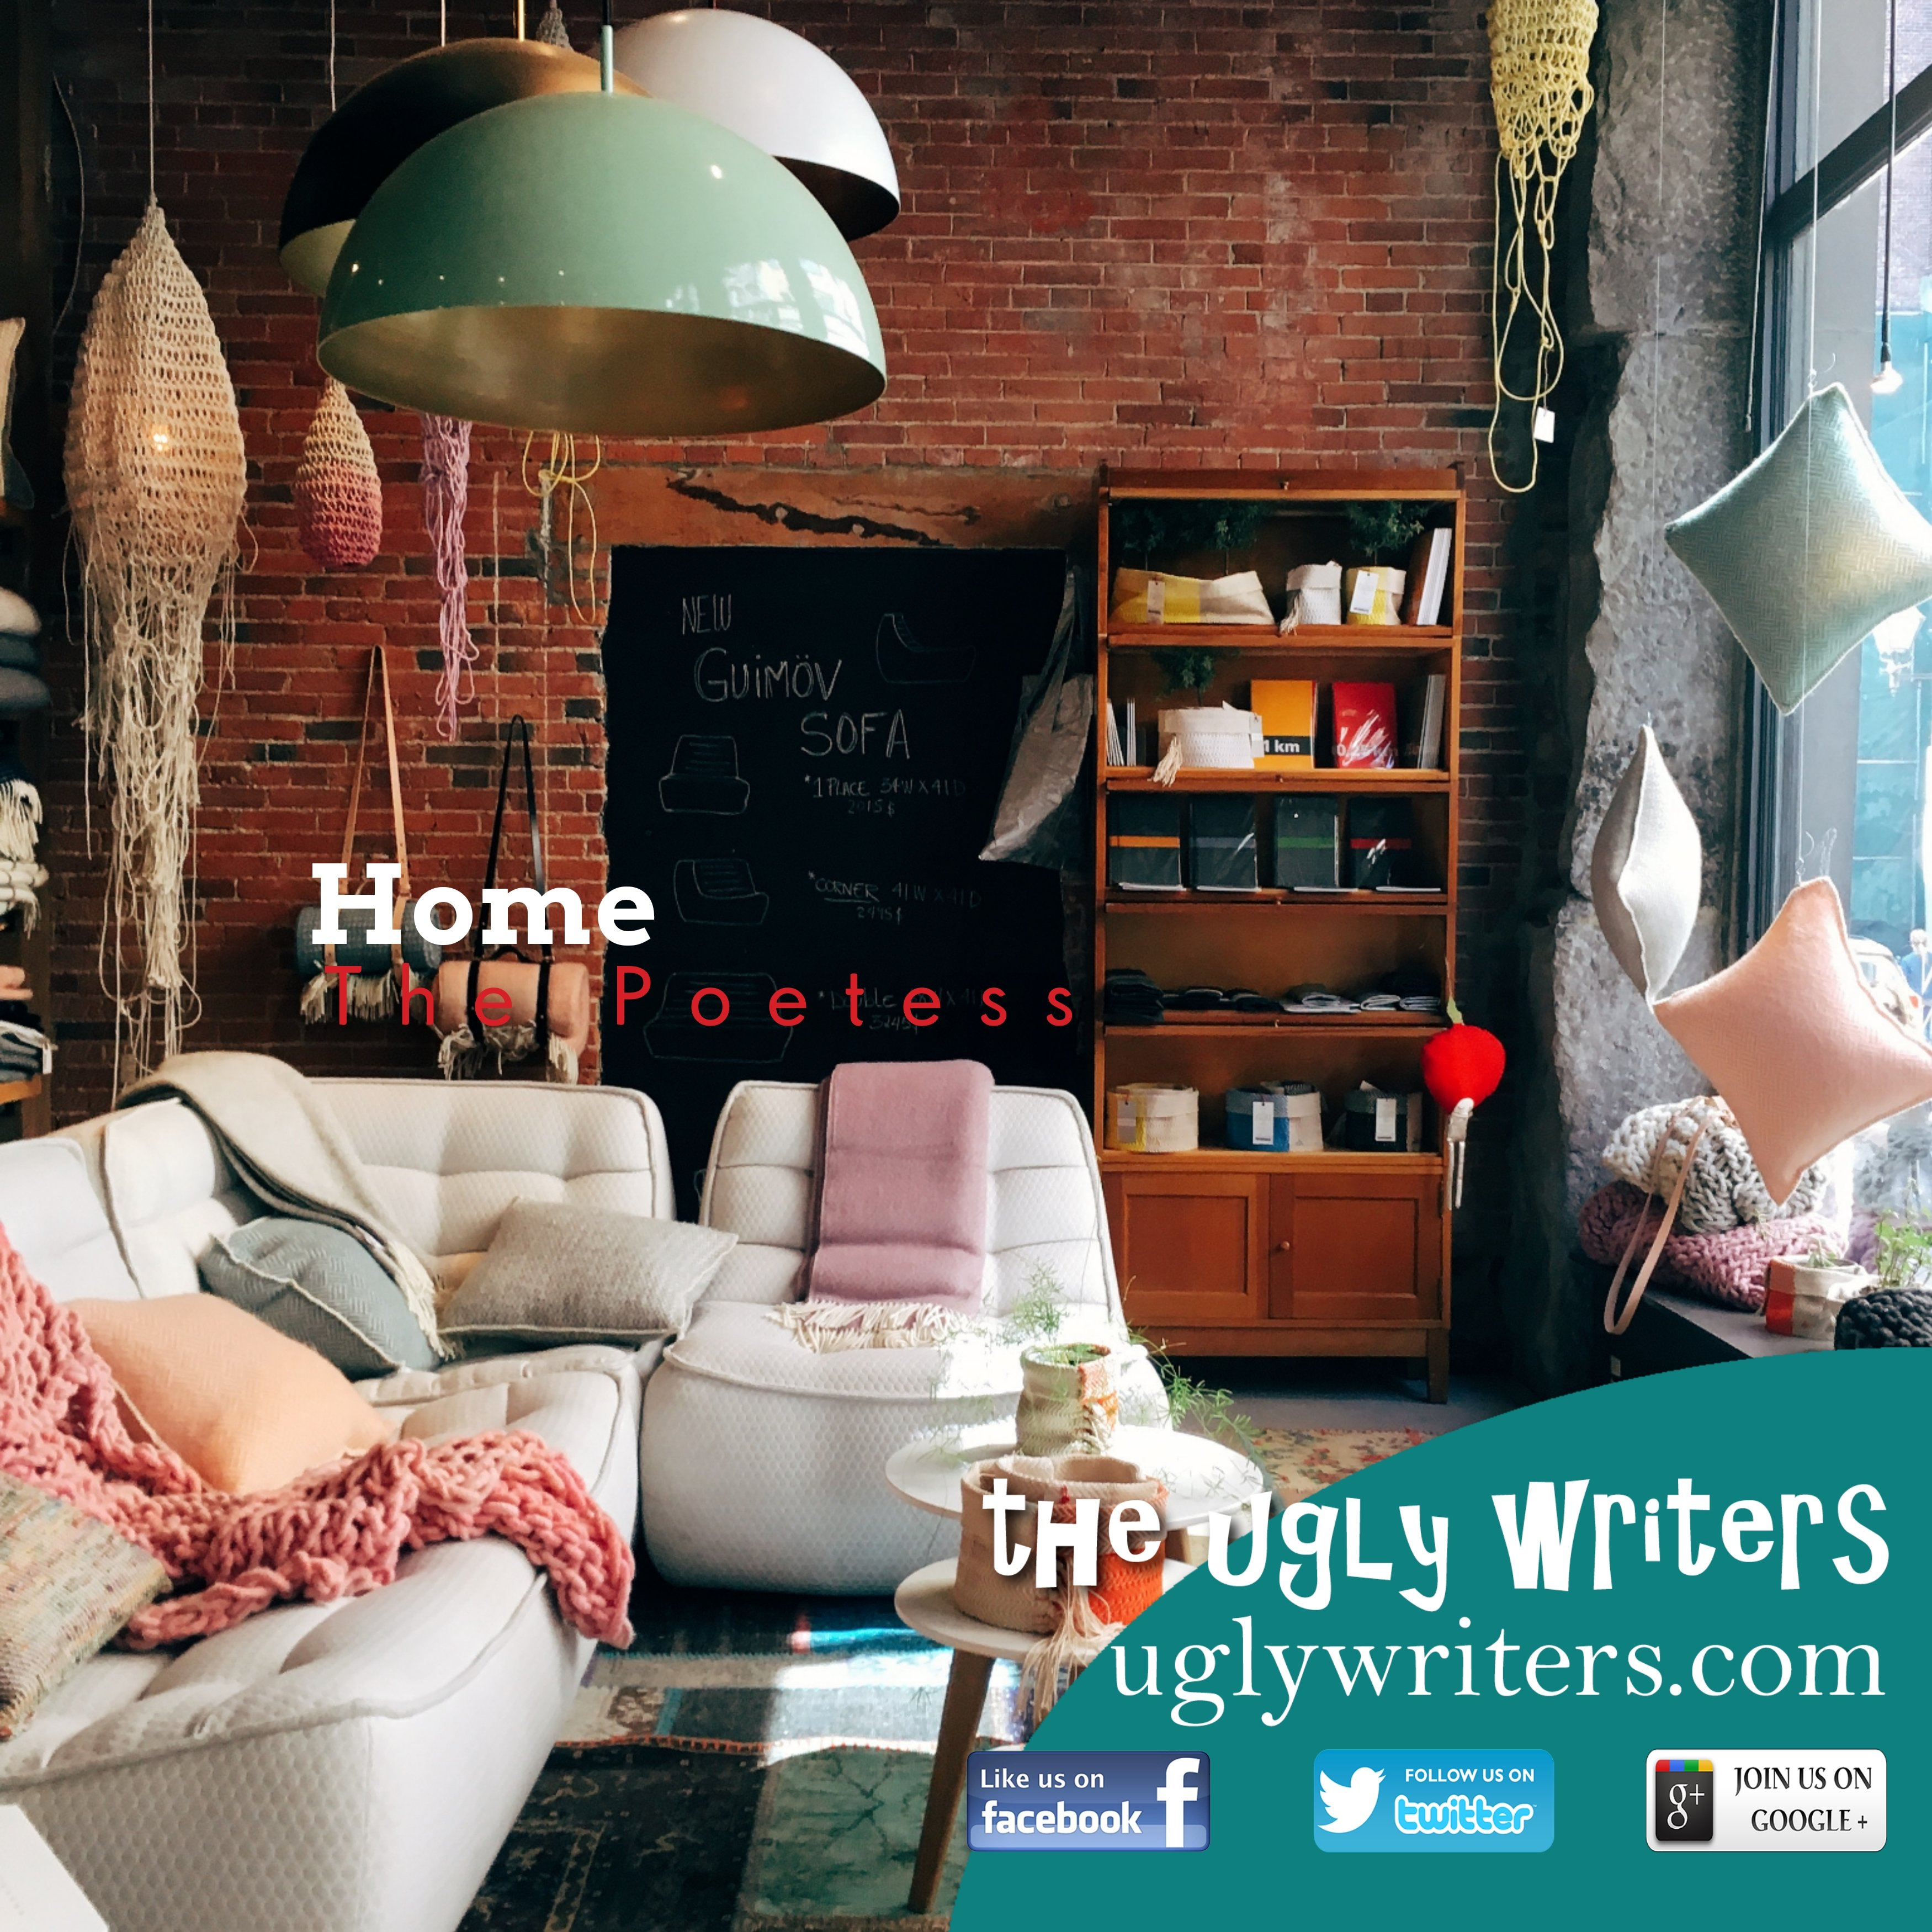 Home the ugly writers